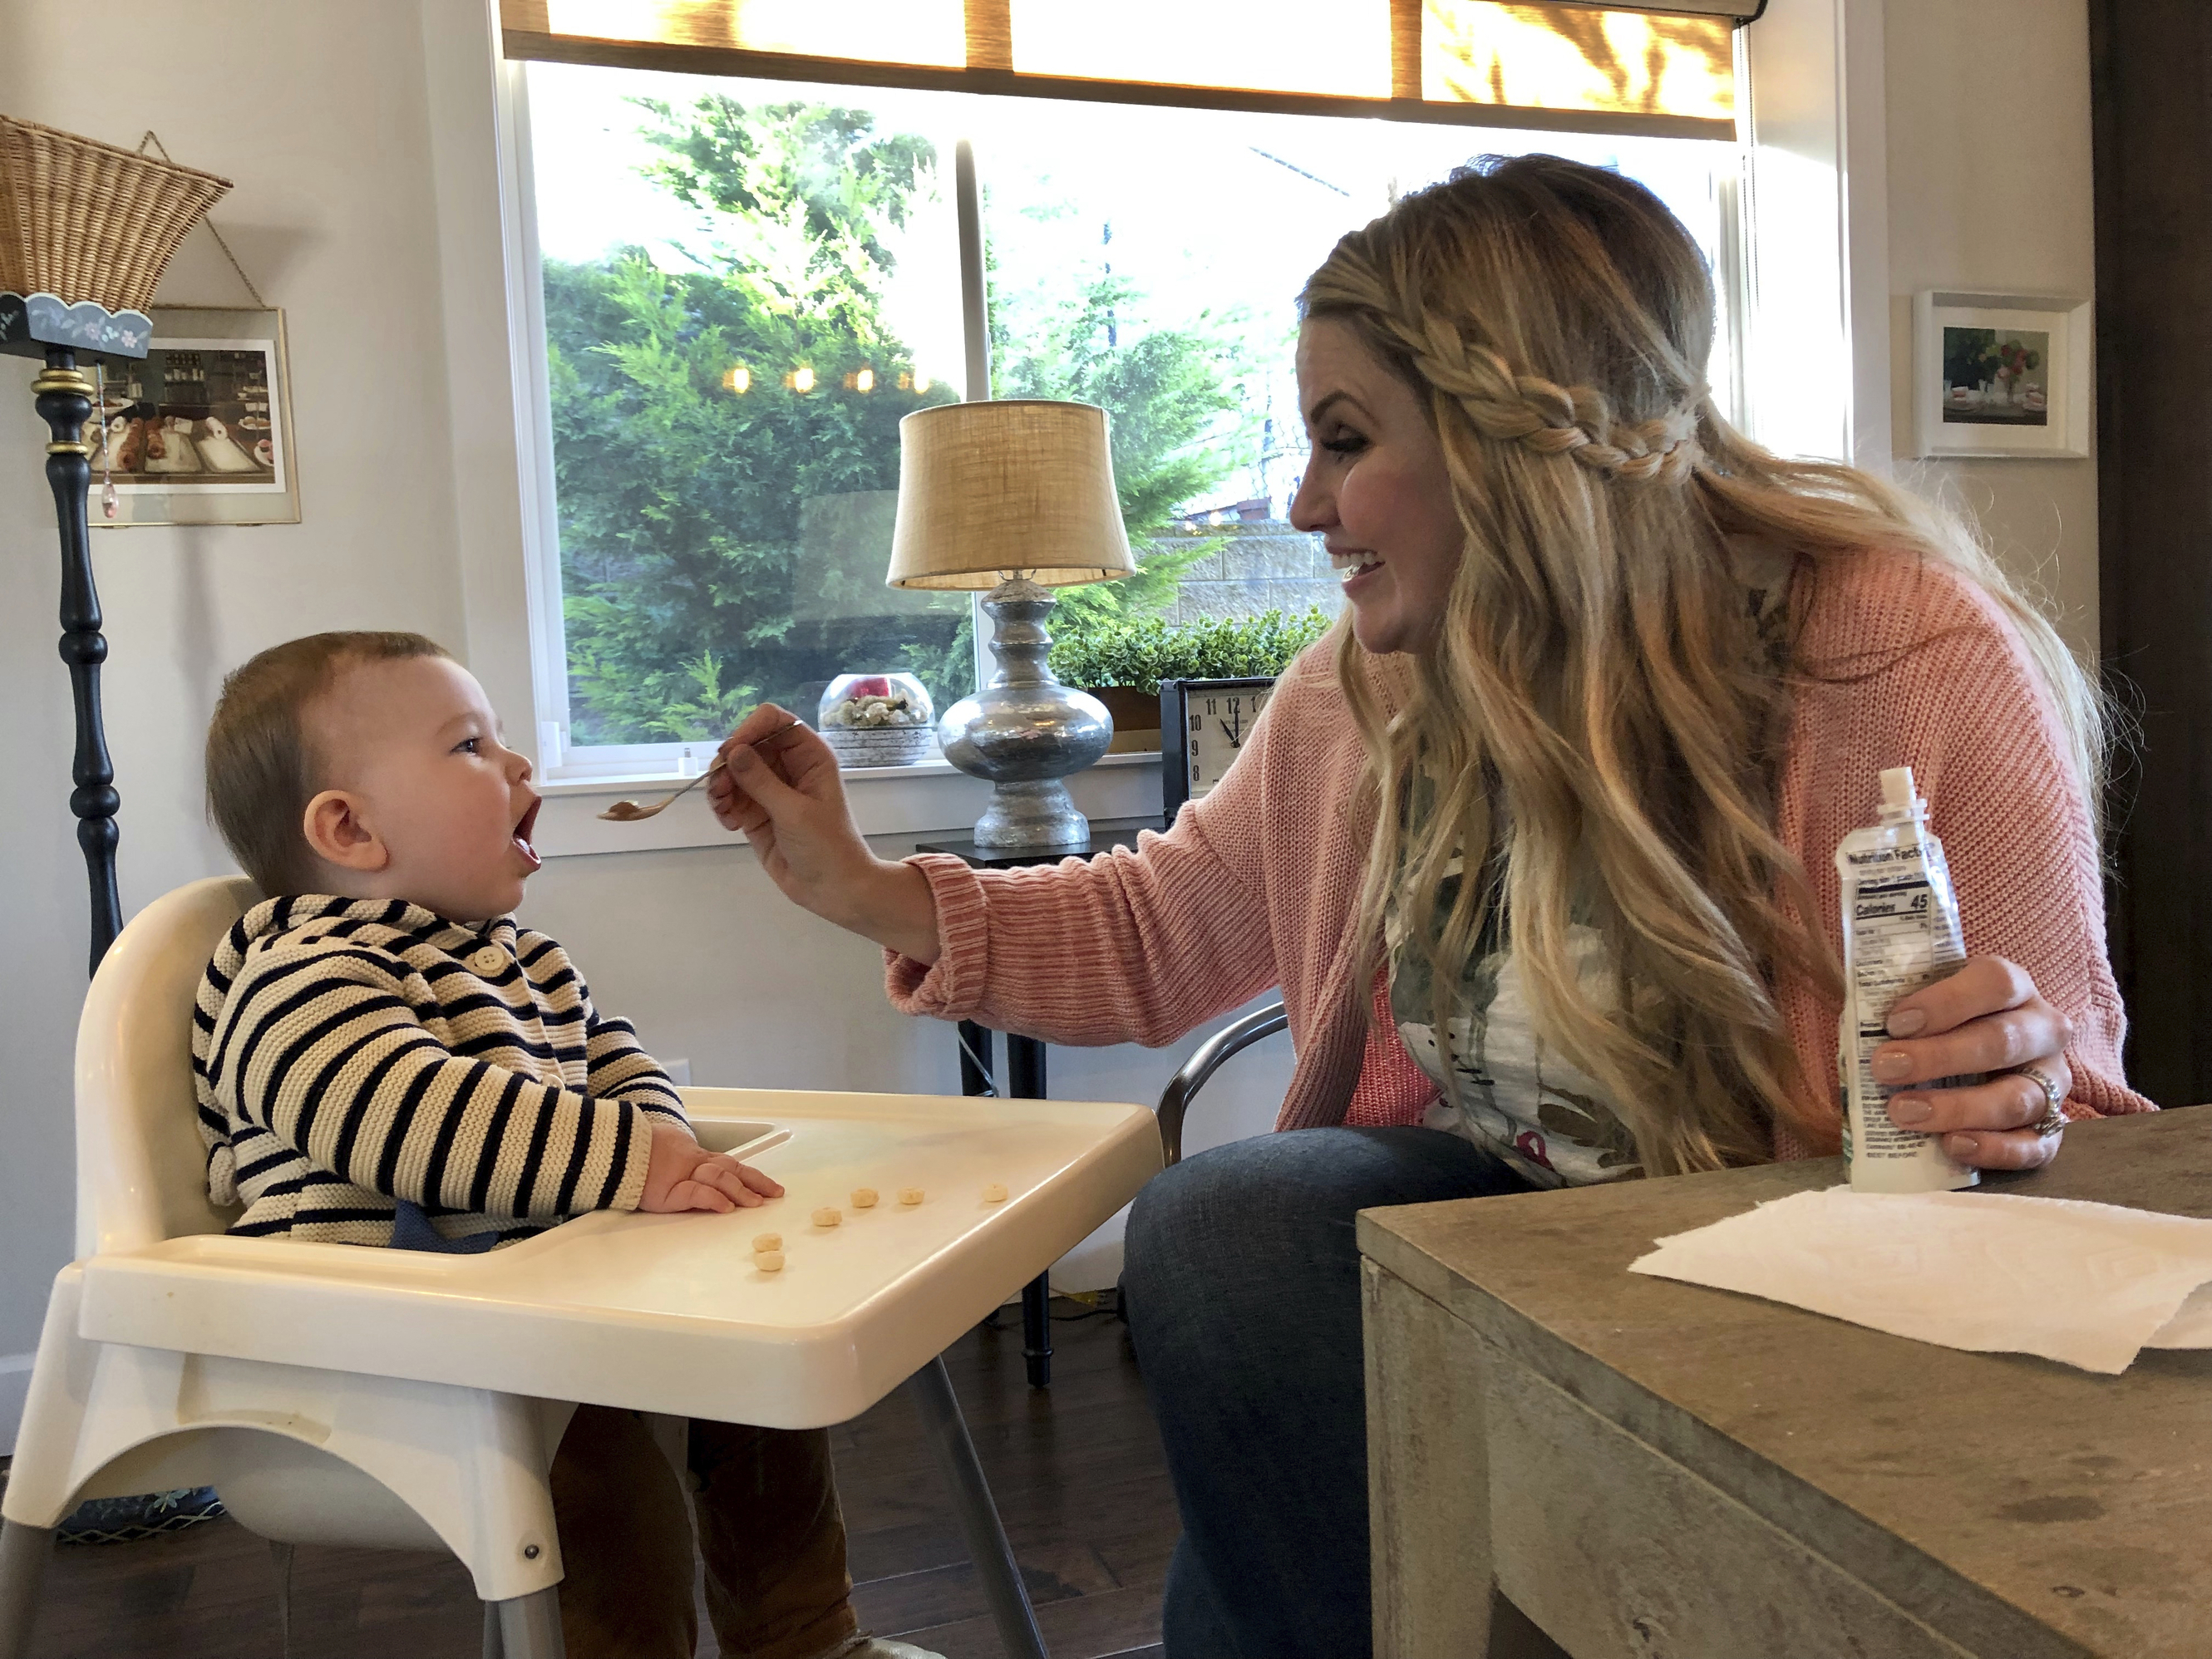 Jocelyn Smith cares for her 11-month-old son, Mason at their home in Camas, Wash., Jan. 30, 2019. Smith has been afraid to take Mason out of the house during a measles outbreak in southwest Washington because he is too young to receive the measles va...